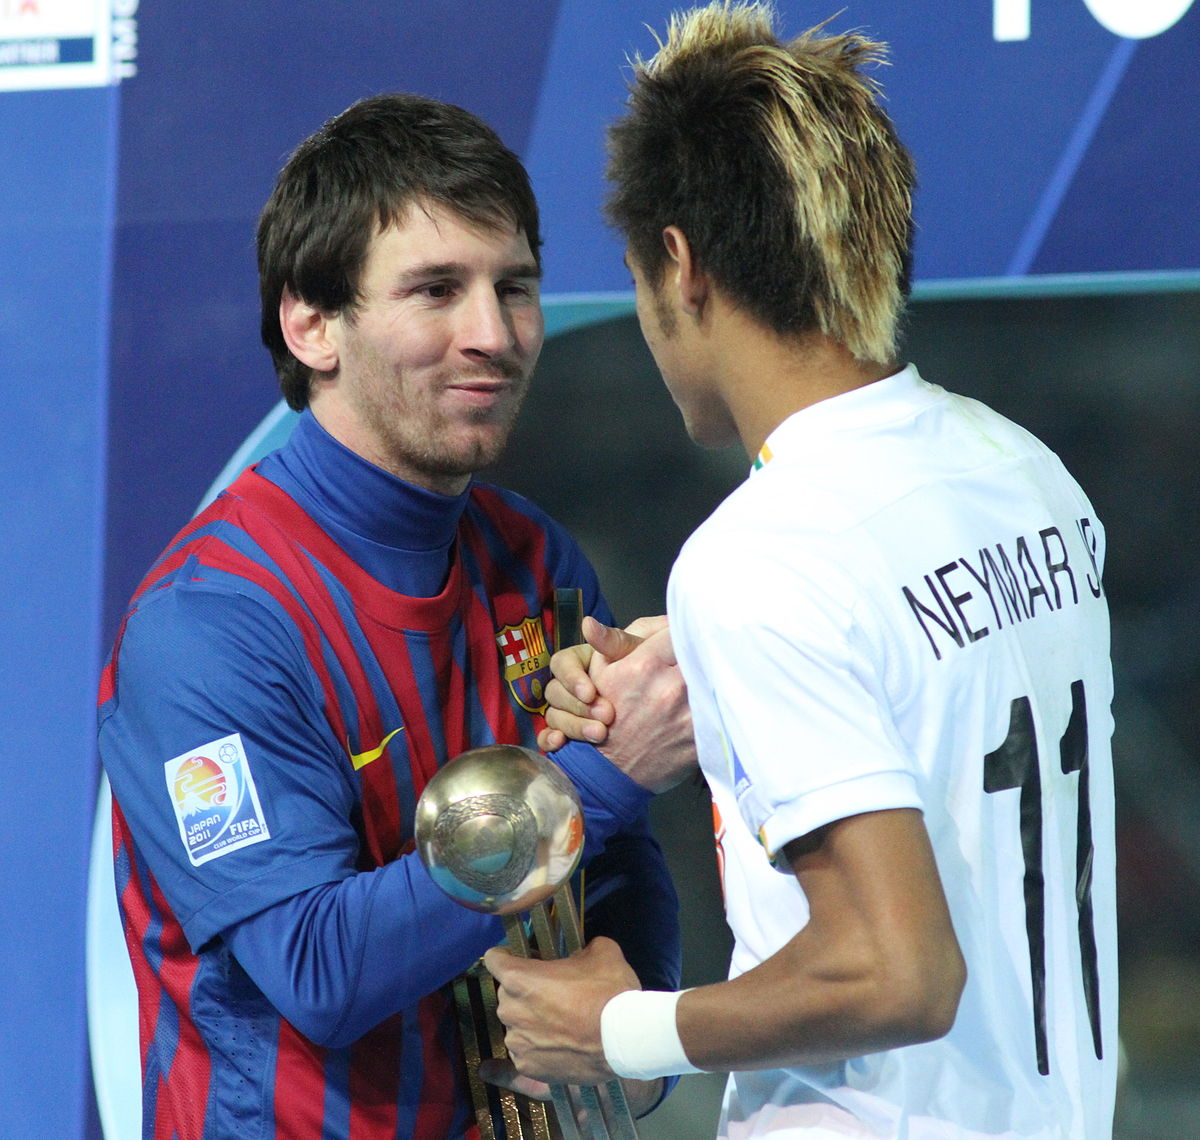 List of career achievements by Lionel Messi - Wikipedia